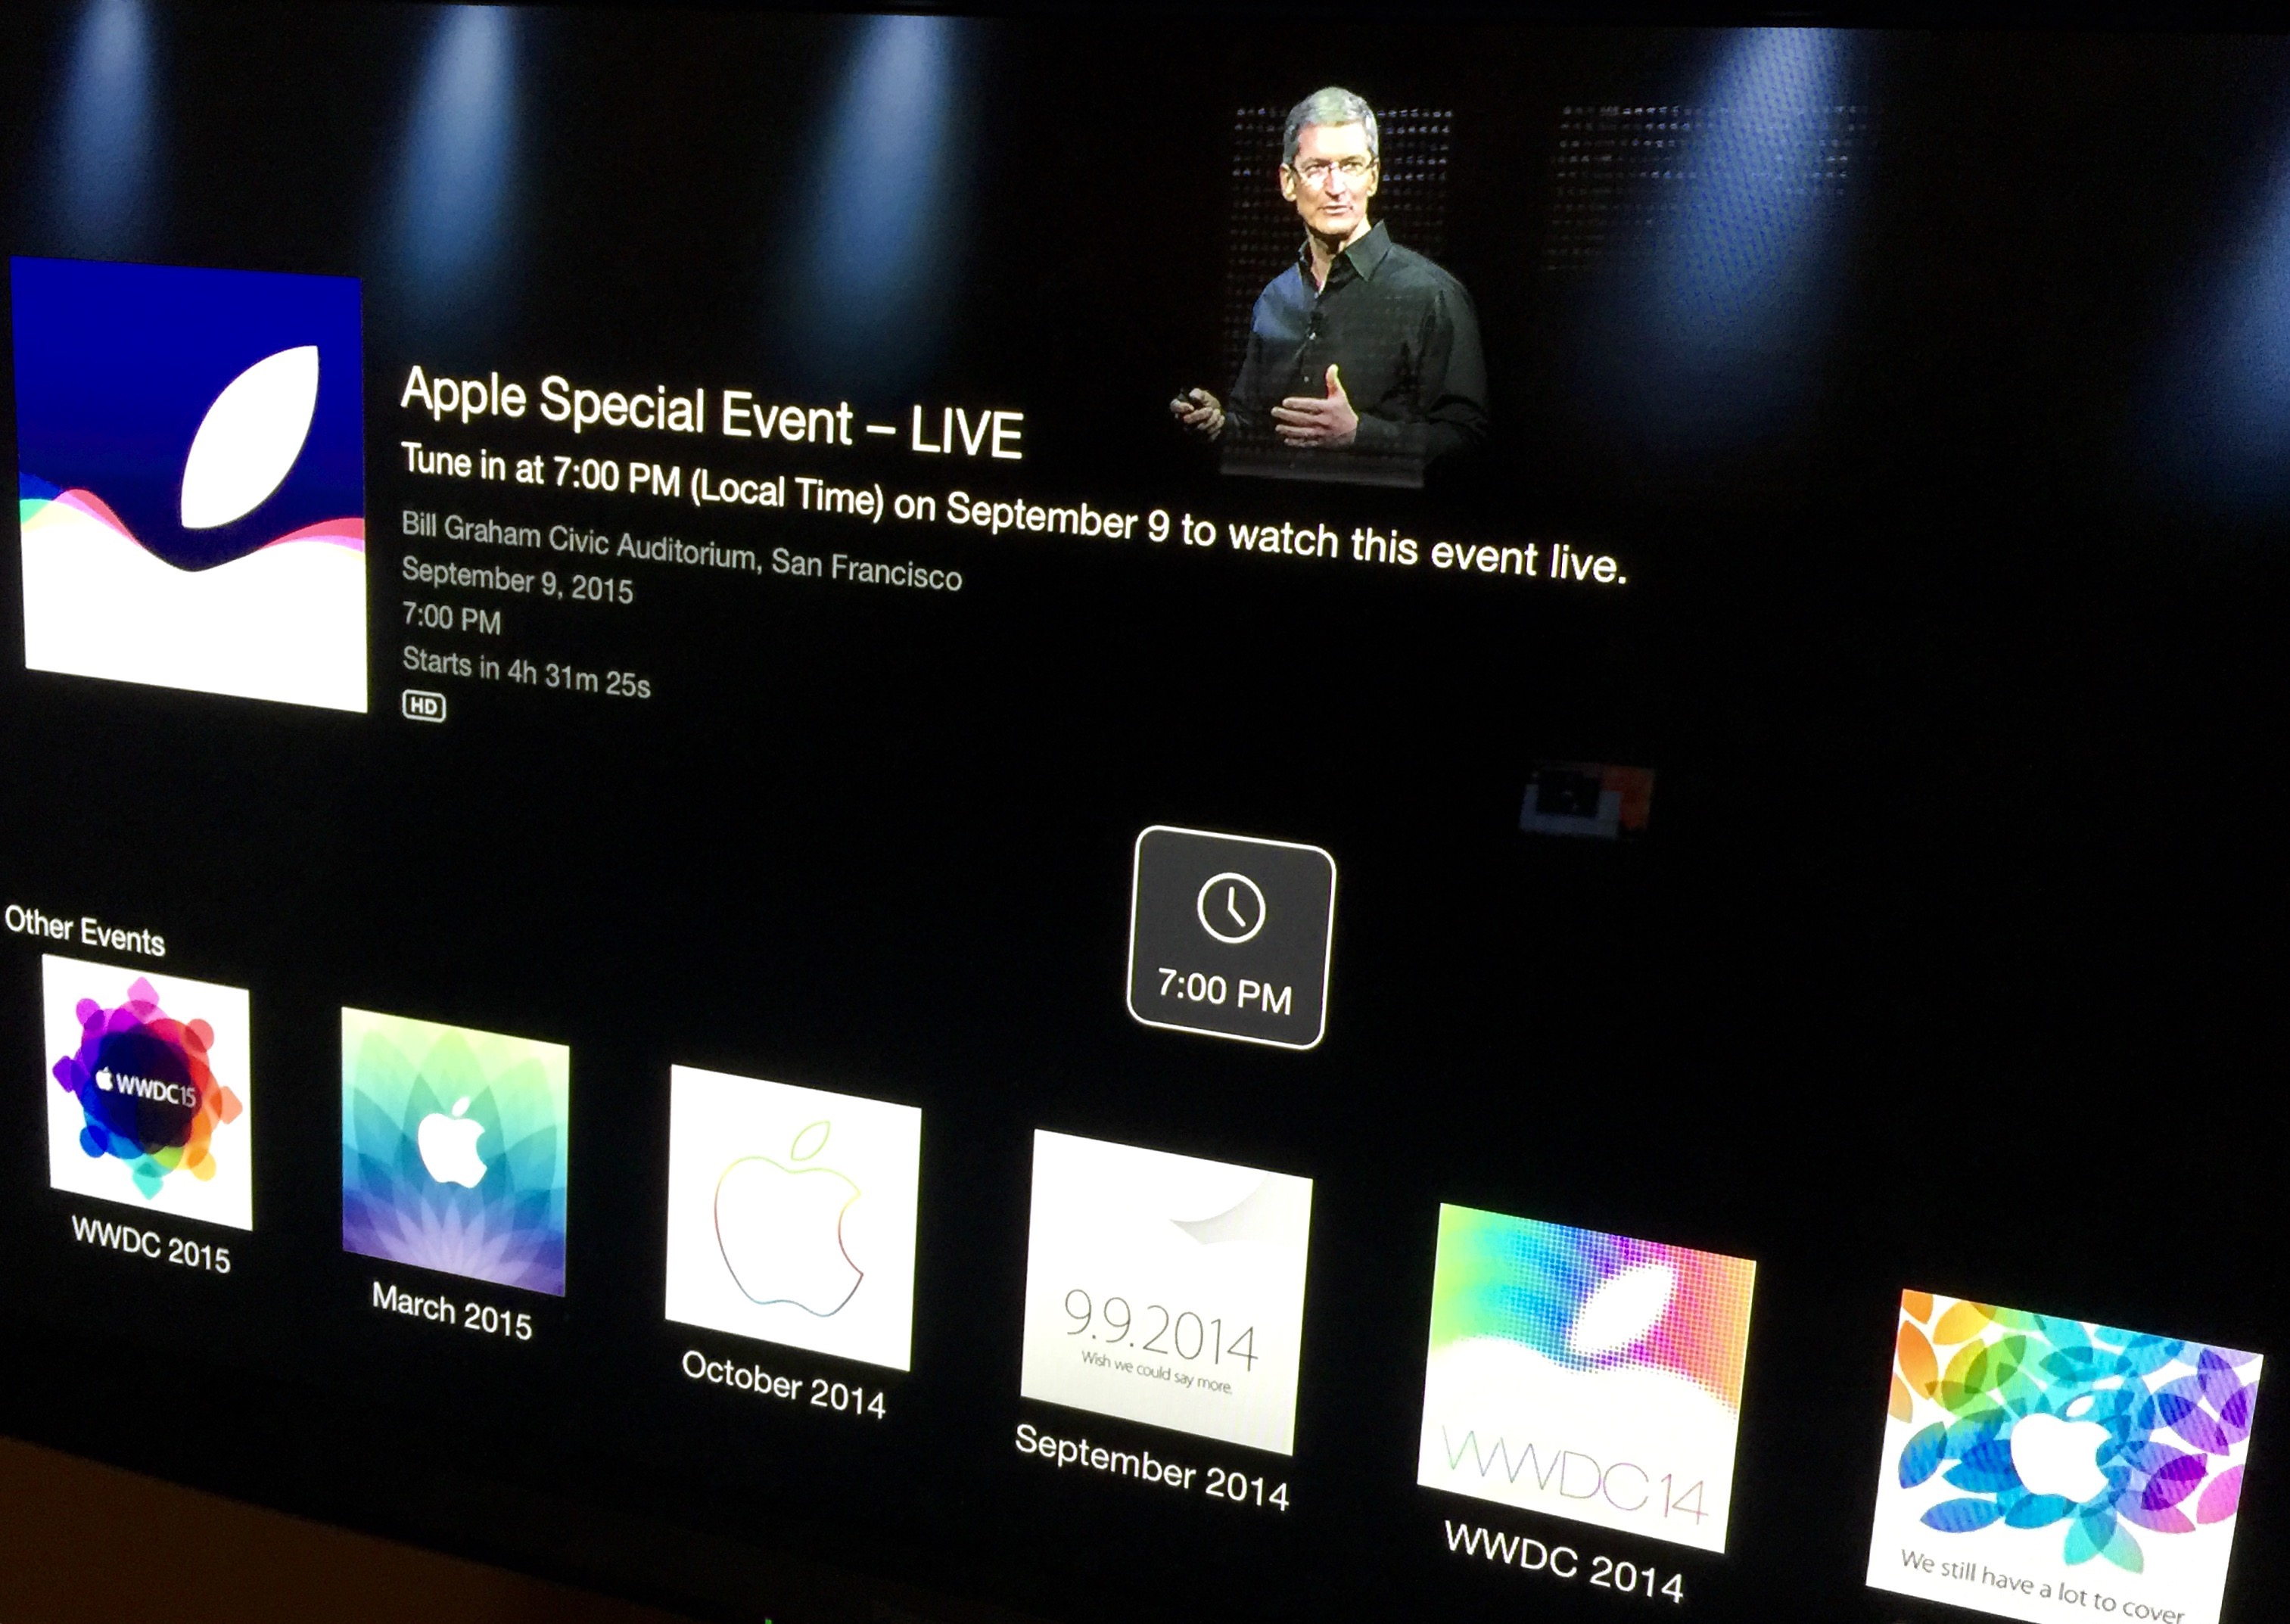 Apple TV September 2015 event channel